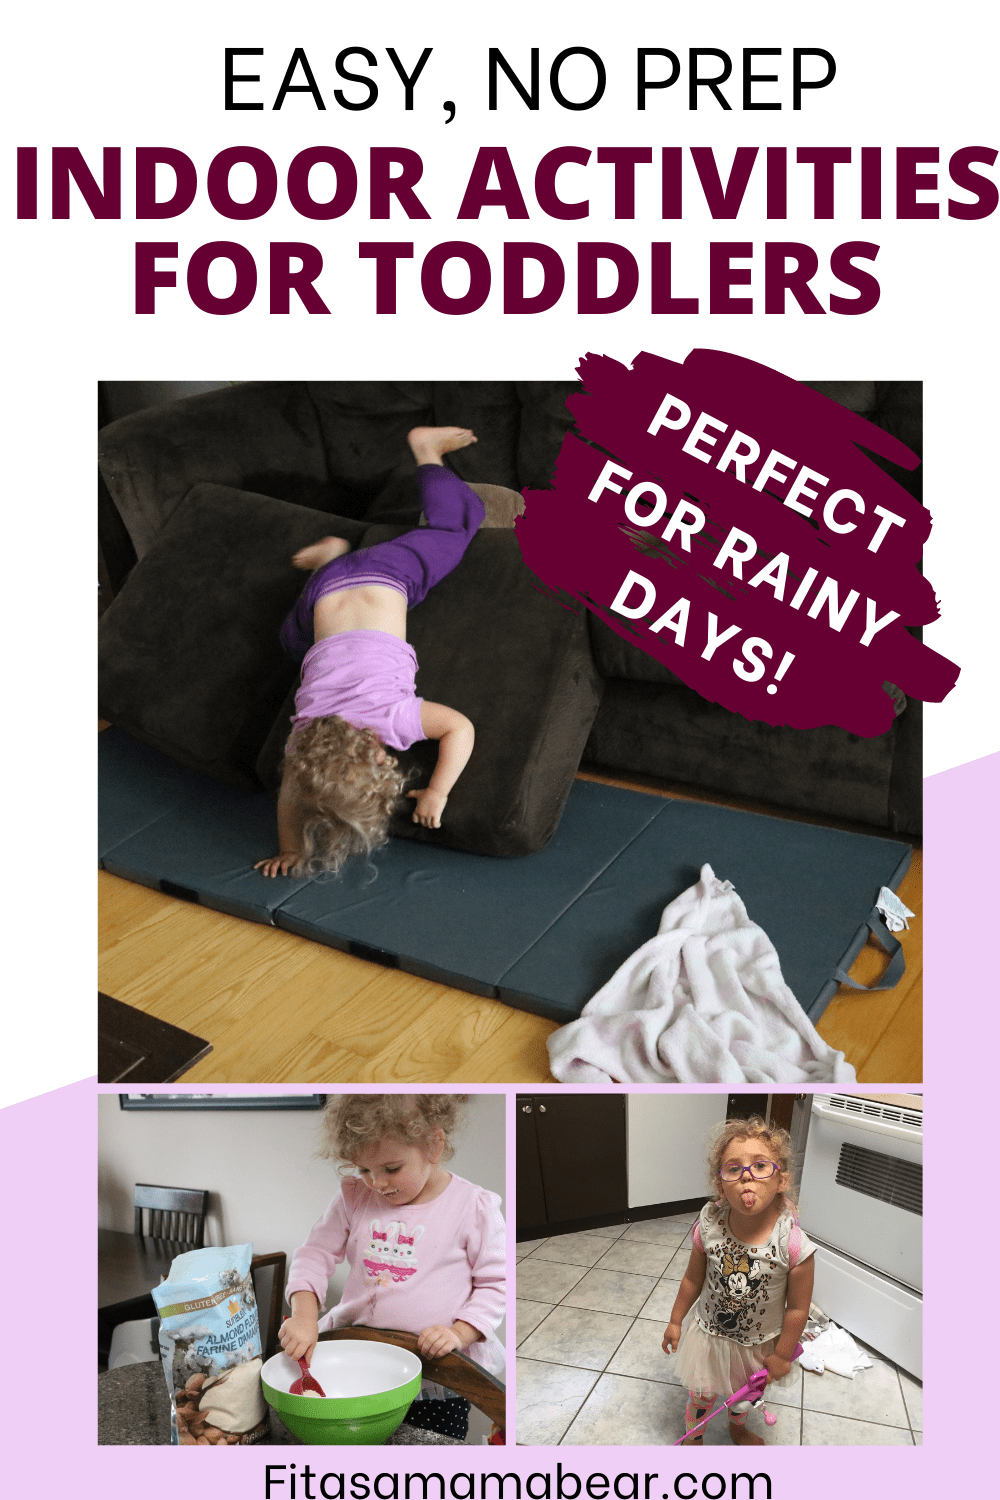 Pinterest image with text: multiple images of indoor toddler activities